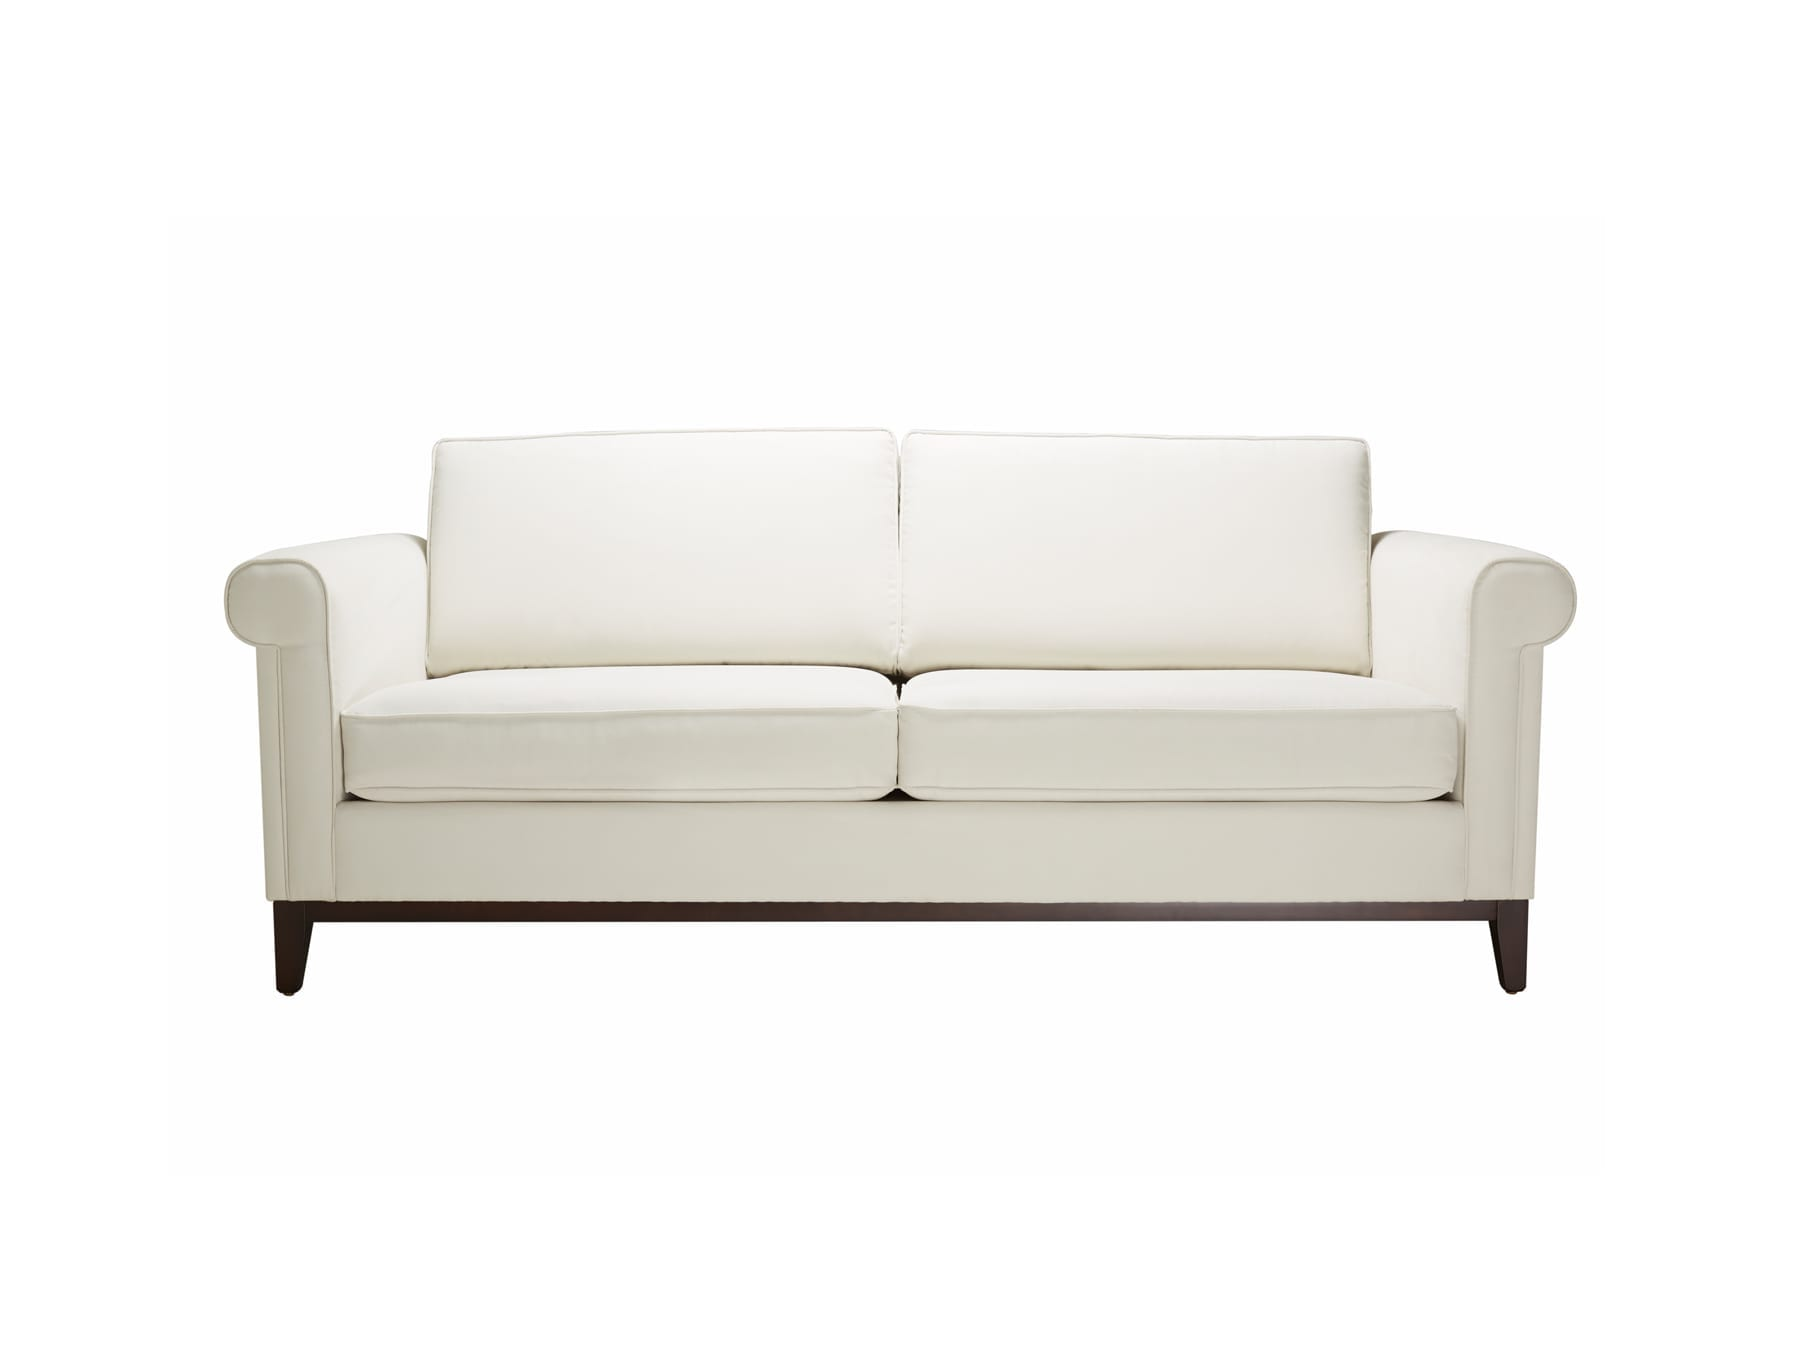 Sofa Set Price In Jagdalpur David Shaw Blake Sofa Mckenzie And Willis